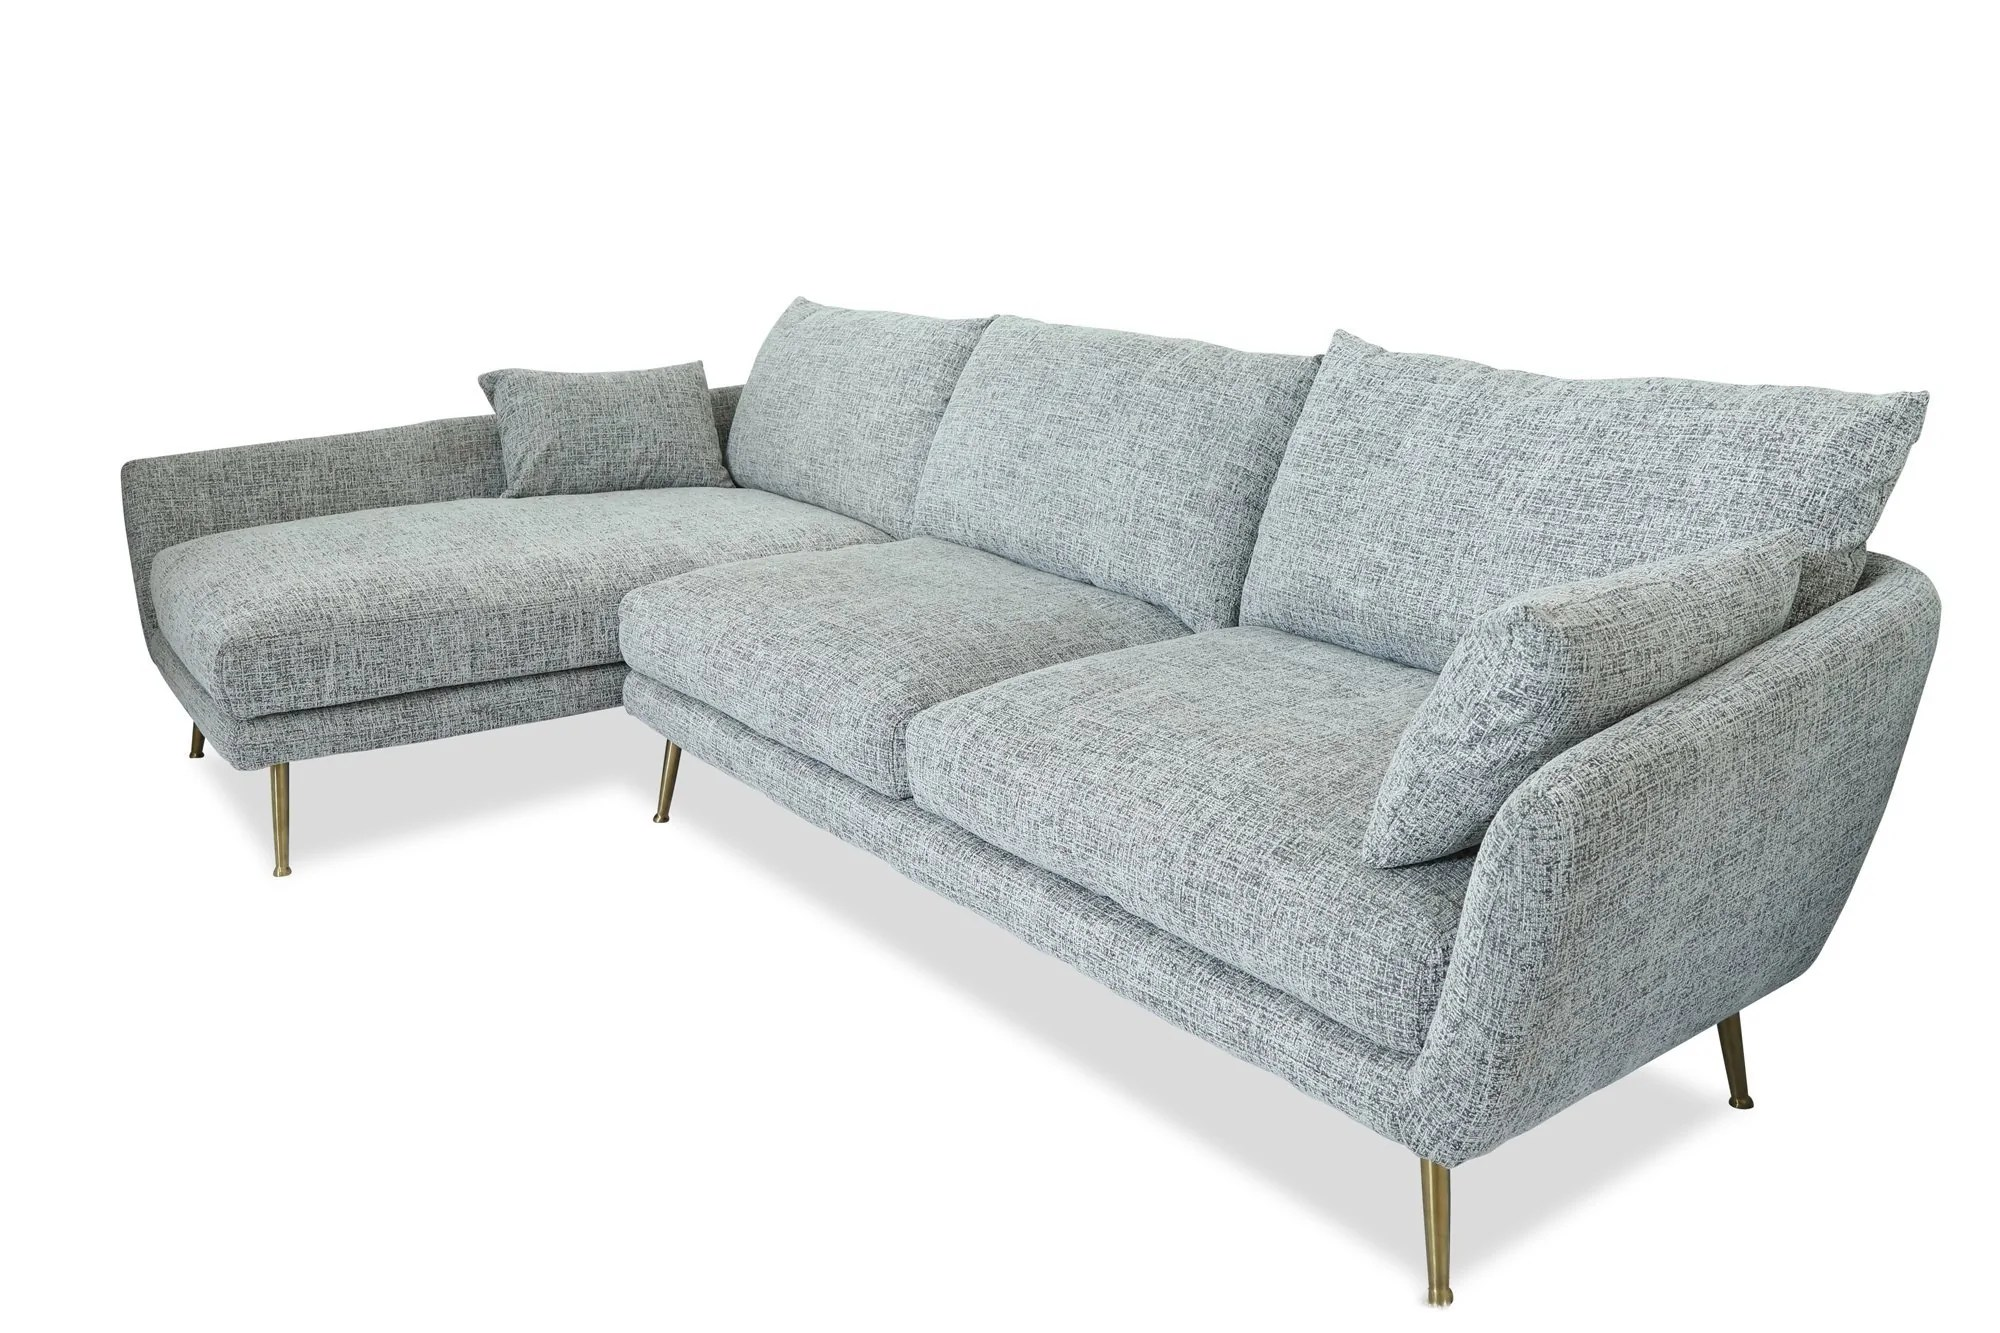 Modern Couch Buy Edloe Finch Ef Zx Sc002l Harlow Mid Century Modern Sectional Sofa Fulton Grey Left Facing At Contemporary Furniture Warehouse